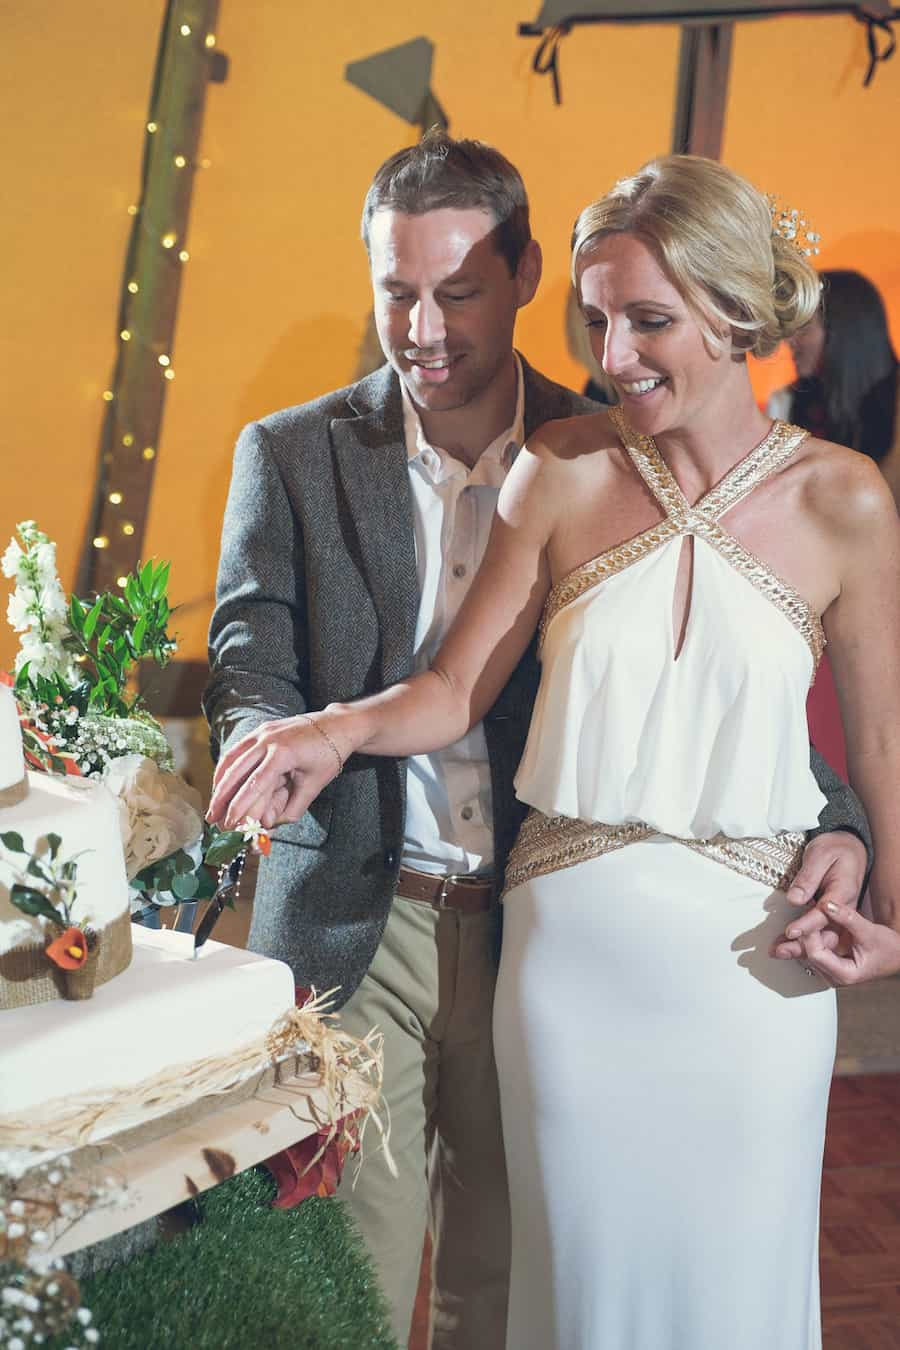 cake - Sami Tipi Wedding - Captured by Duncan Cox